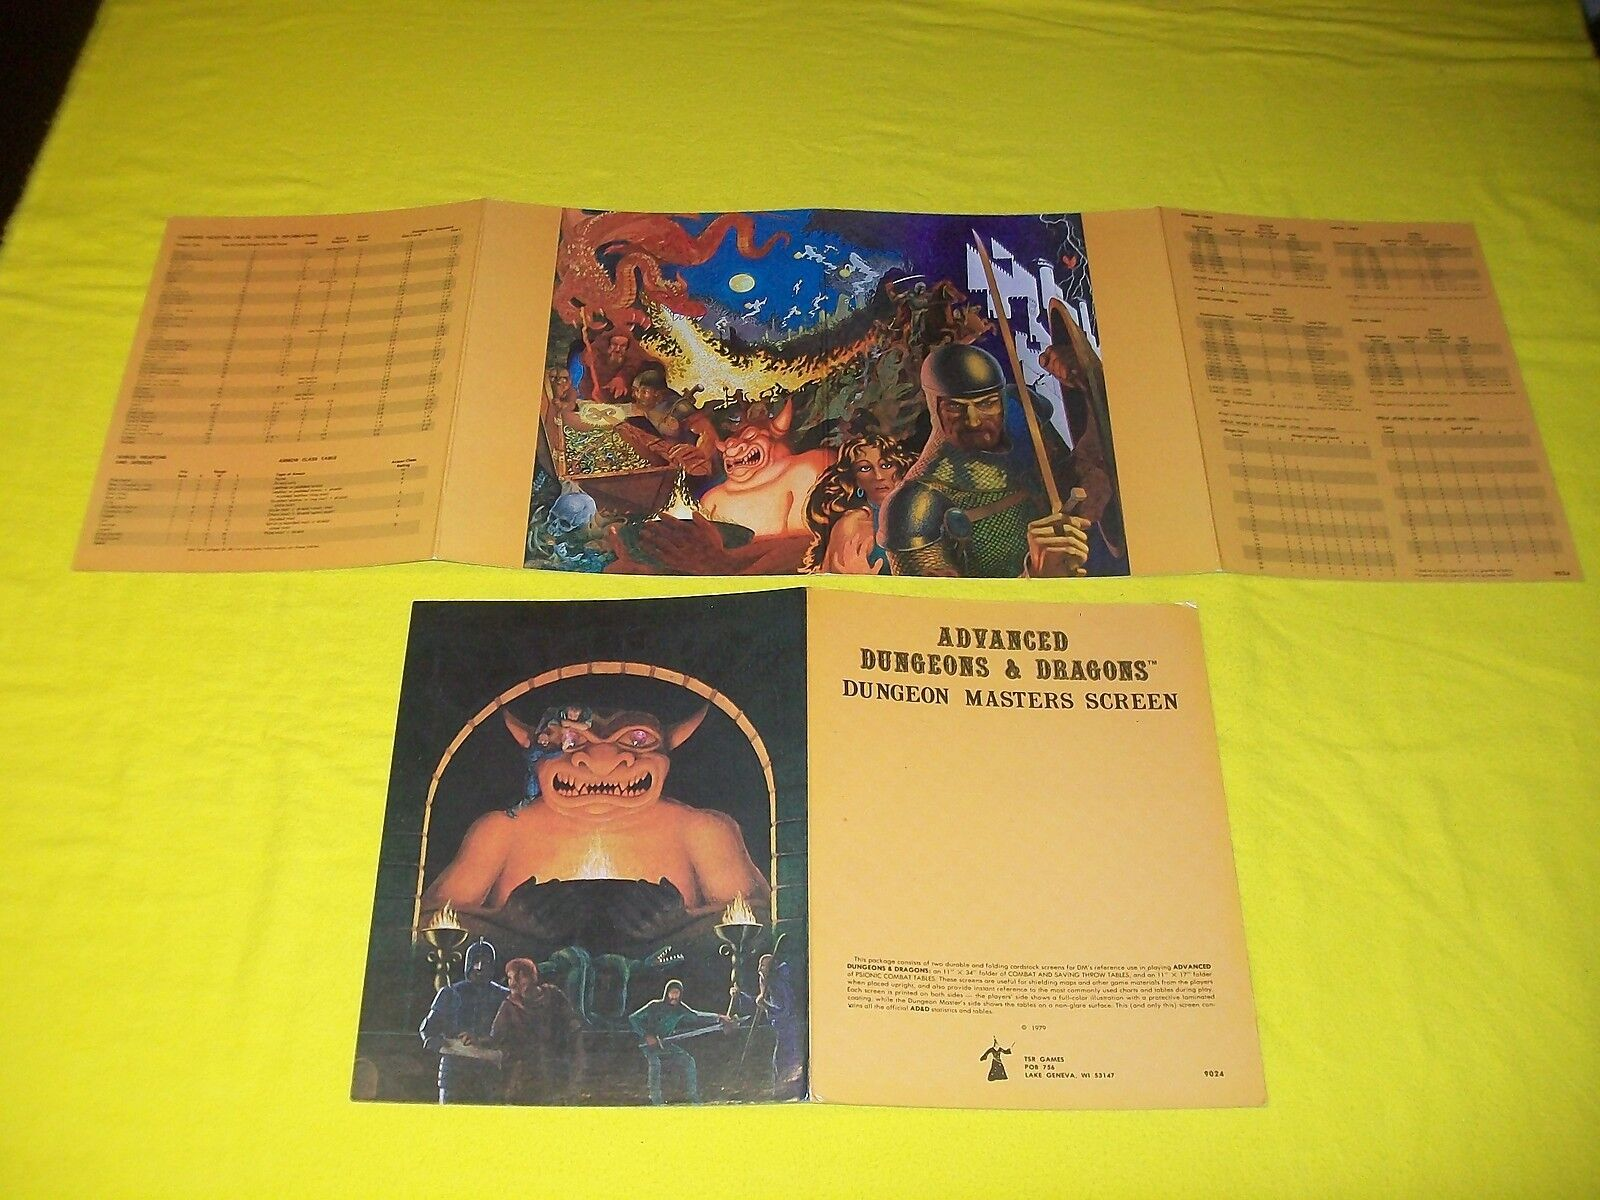 Dungeon Masters pantalla Dungeons & Dragons AD&D TSR 9024 - 7 1ST panel impreso 2 4